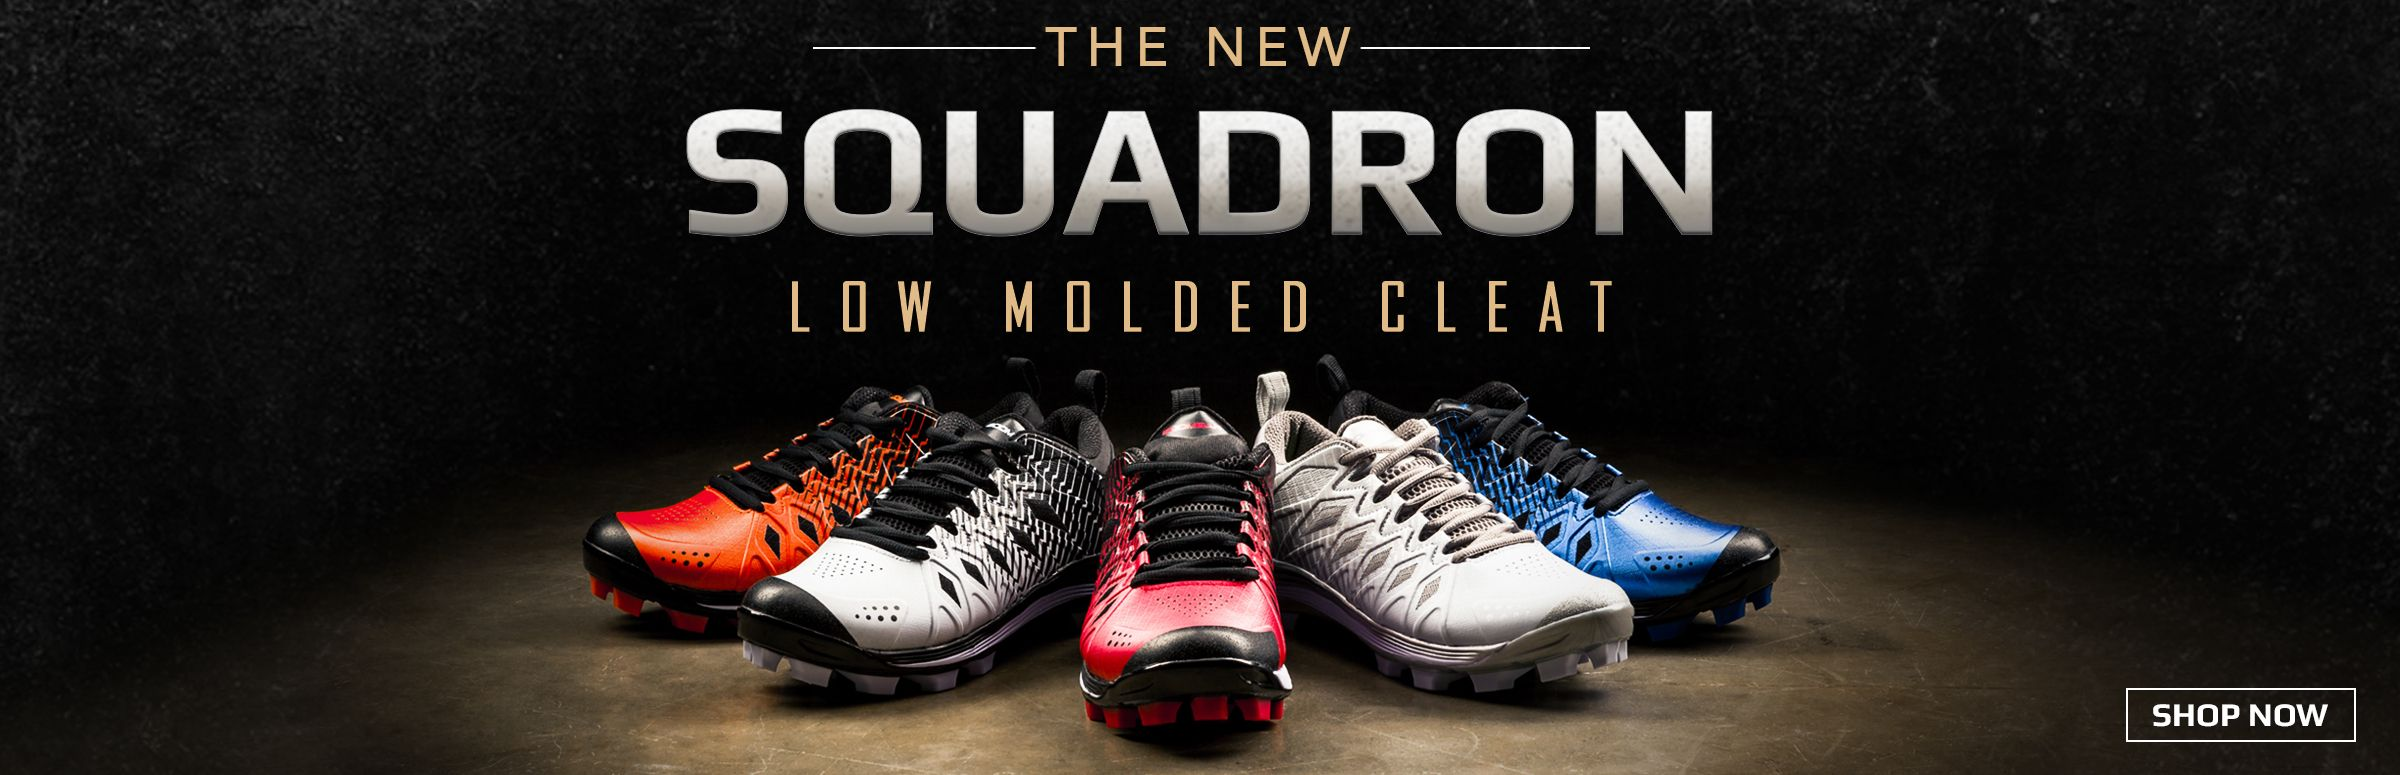 Boombah Squadron Low Molded Cleats